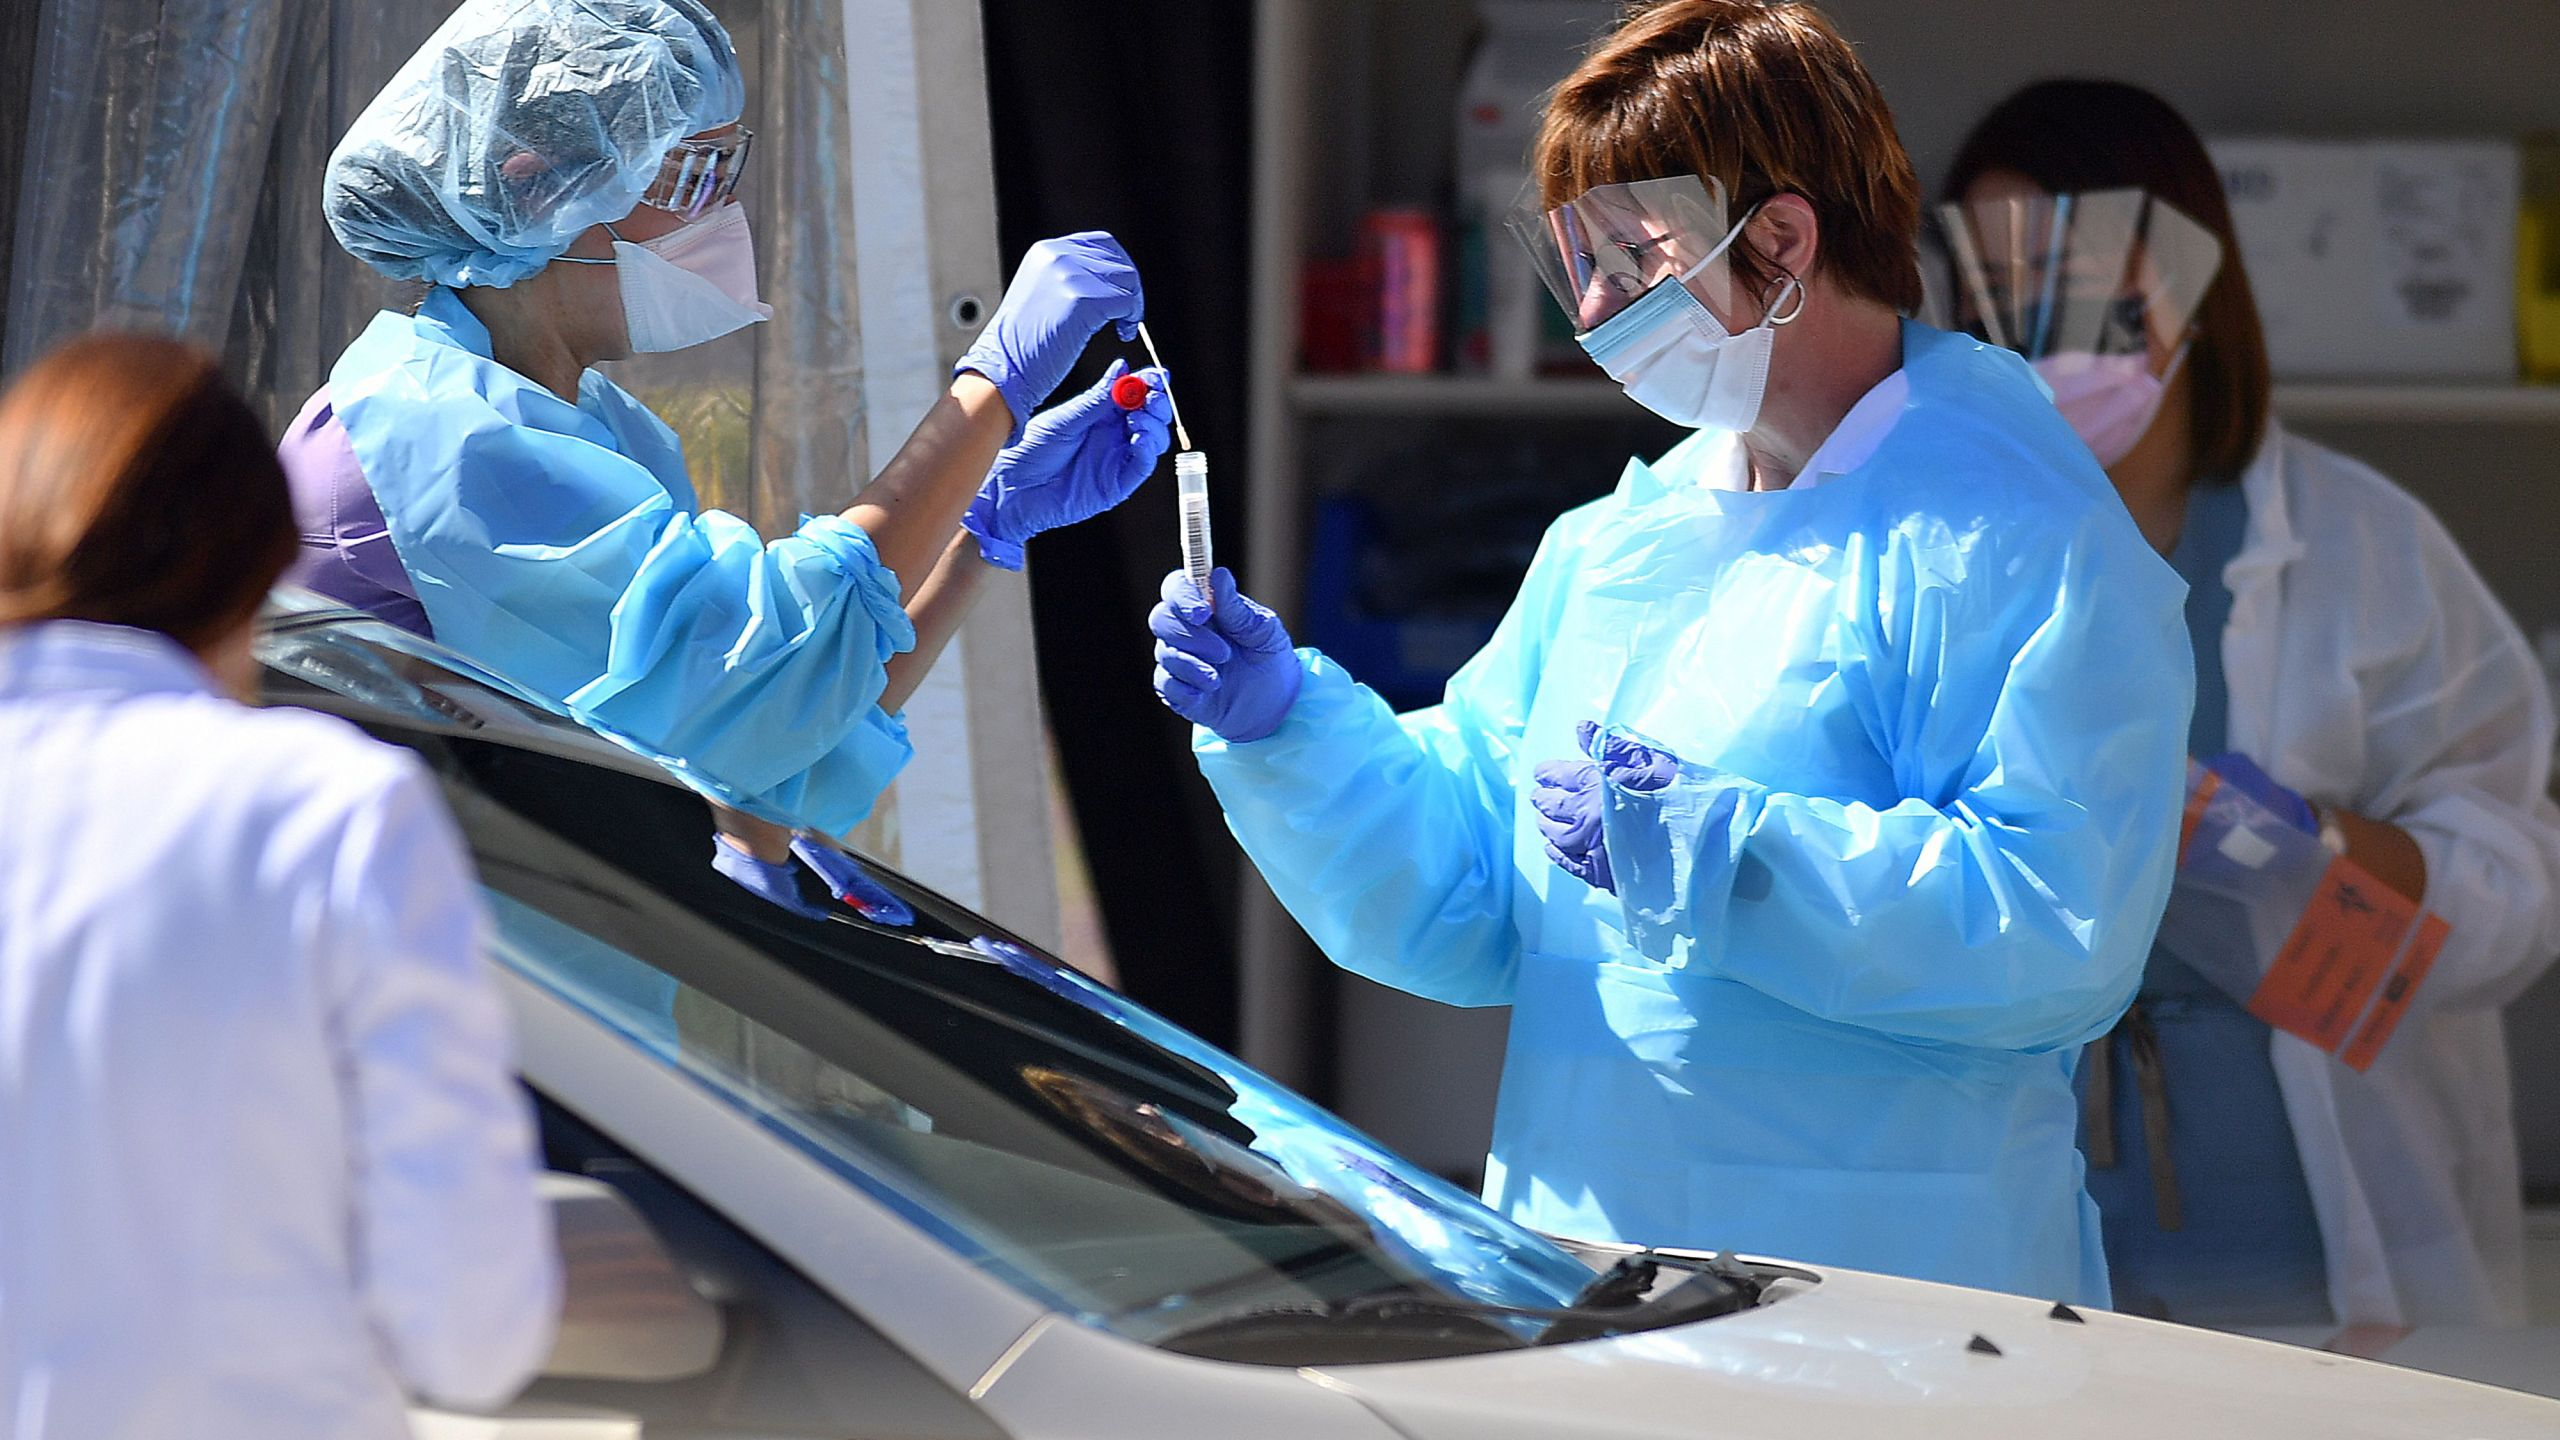 Medical workers at Kaiser Permanente French Campus test a patient for the novel coronavirus, COVID-19, at a drive-thru testing facility in San Francisco on March 12, 2020. (JOSH EDELSON/AFP via Getty Images)